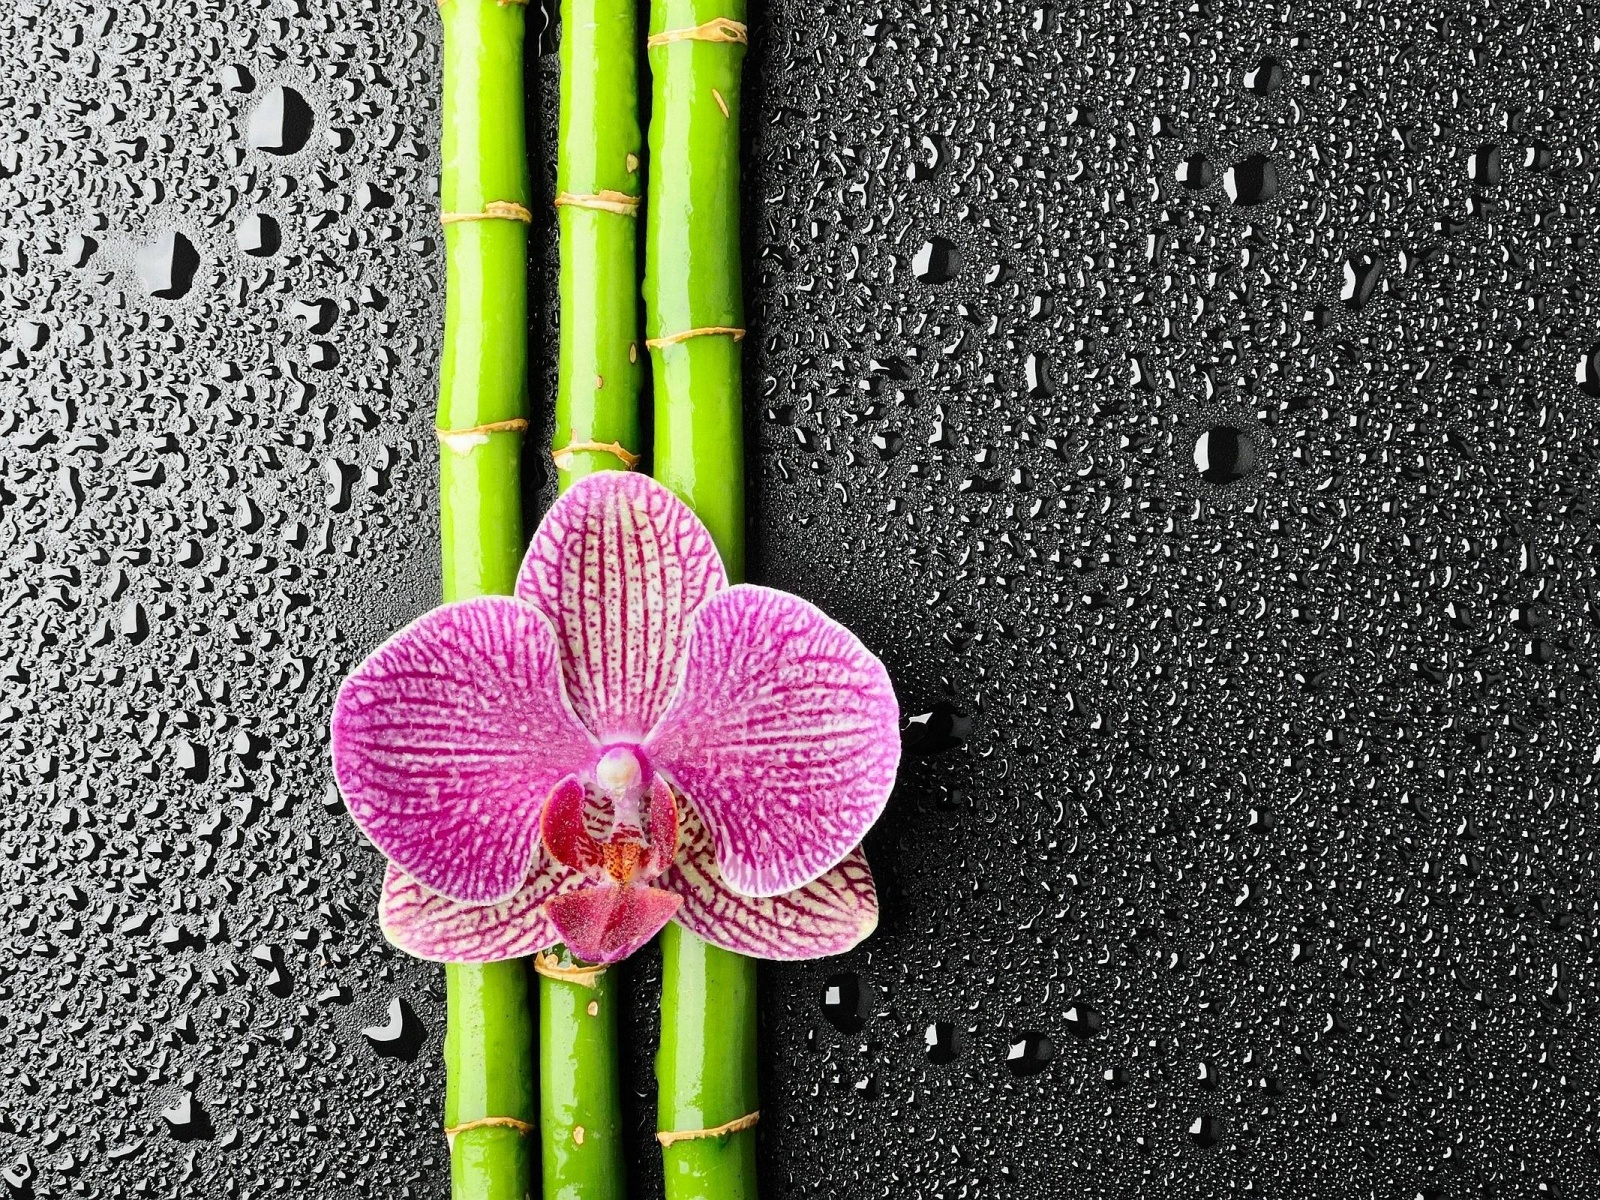 Description: The Wallpaper above is Flower Bamboo Wallpaper in Resolution 1600x1200. Choose your Resolution and Download Flower Bamboo Wallpaper